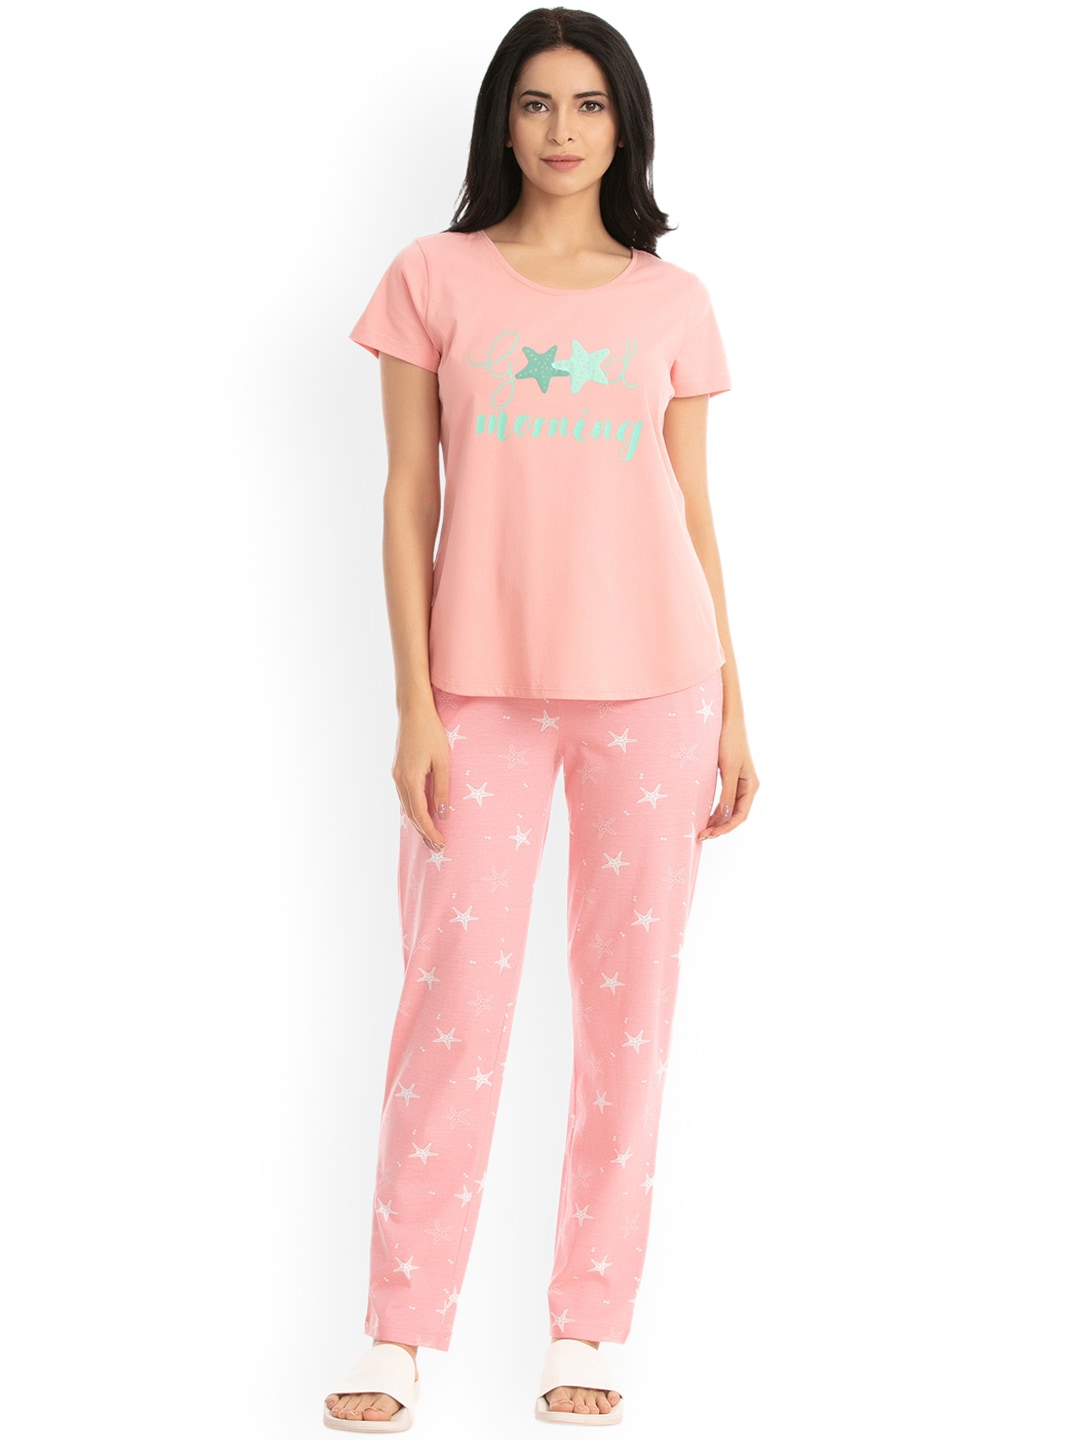 e8b96aea57fa29 Women Loungewear   Nightwear - Buy Women Nightwear   Loungewear online -  Myntra